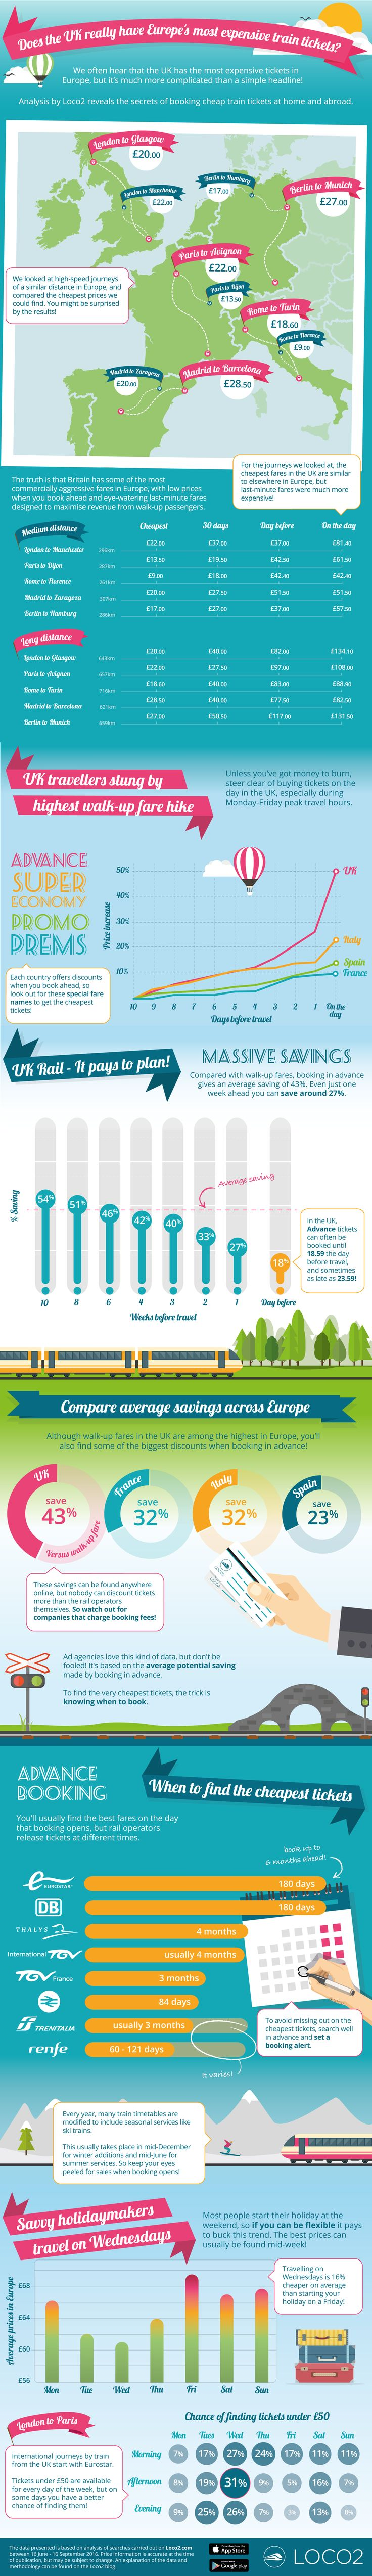 Infographic reveals how to find the cheapest train tickets in the UK and across Europe.